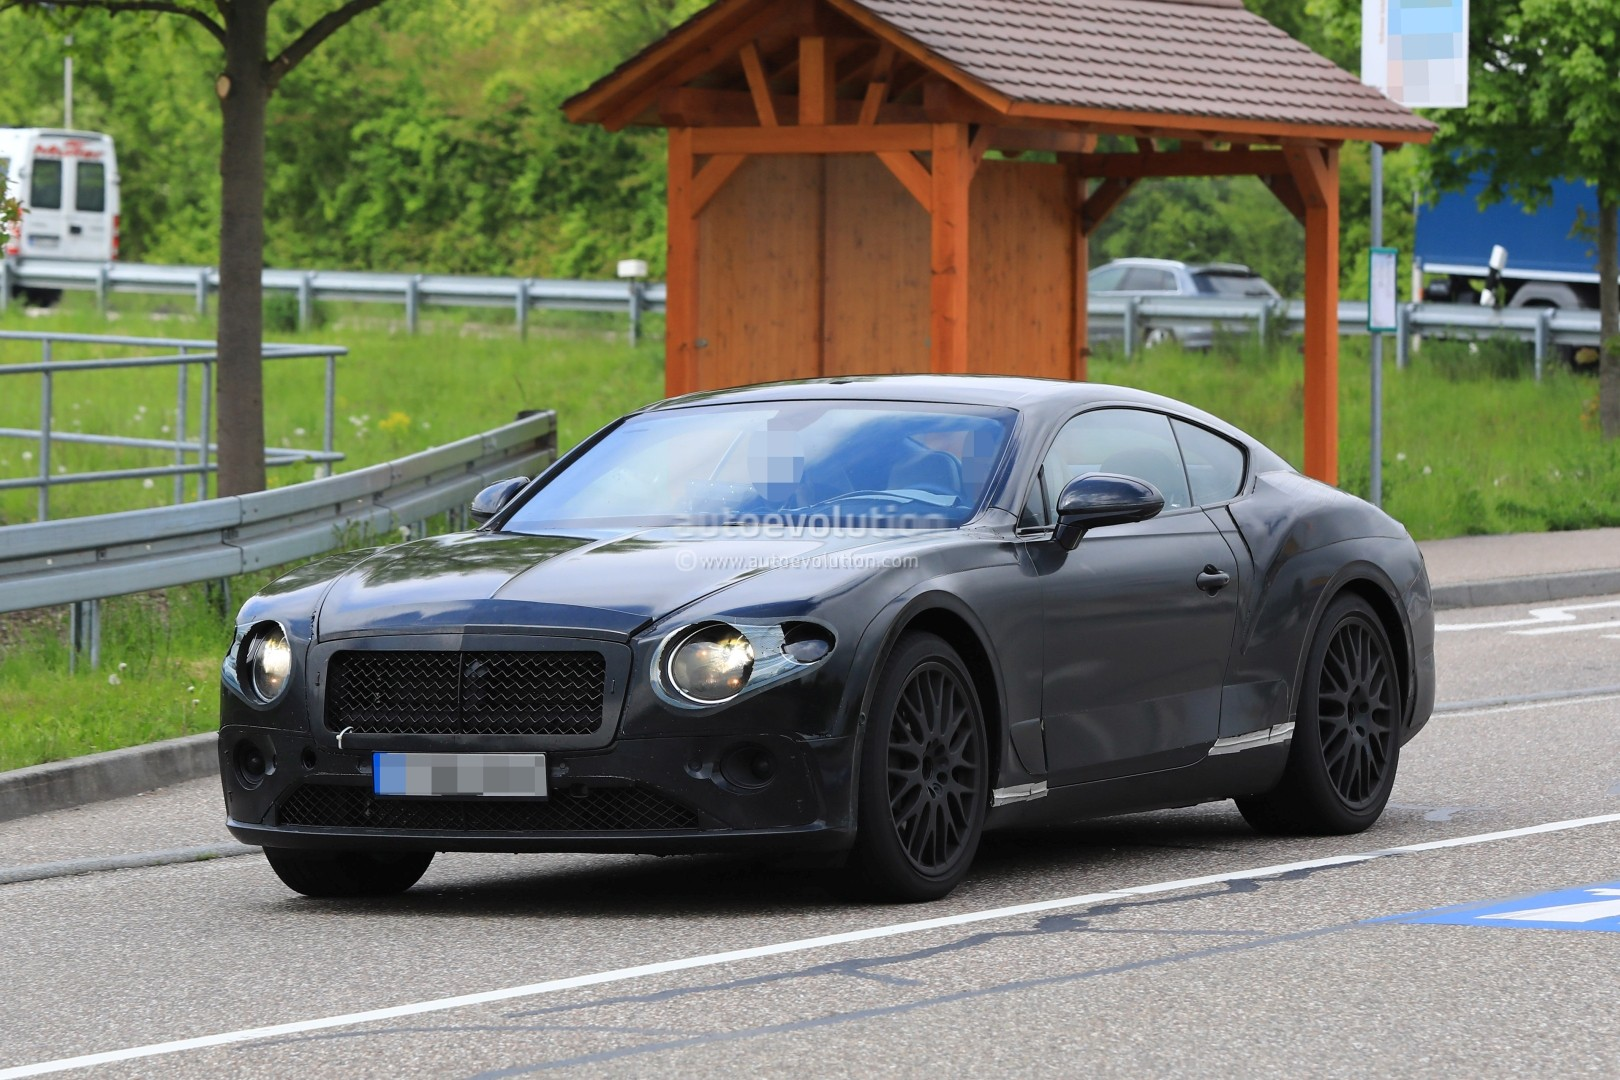 2018 bentley continental gt laps nurburgring  powered by new w12 engine